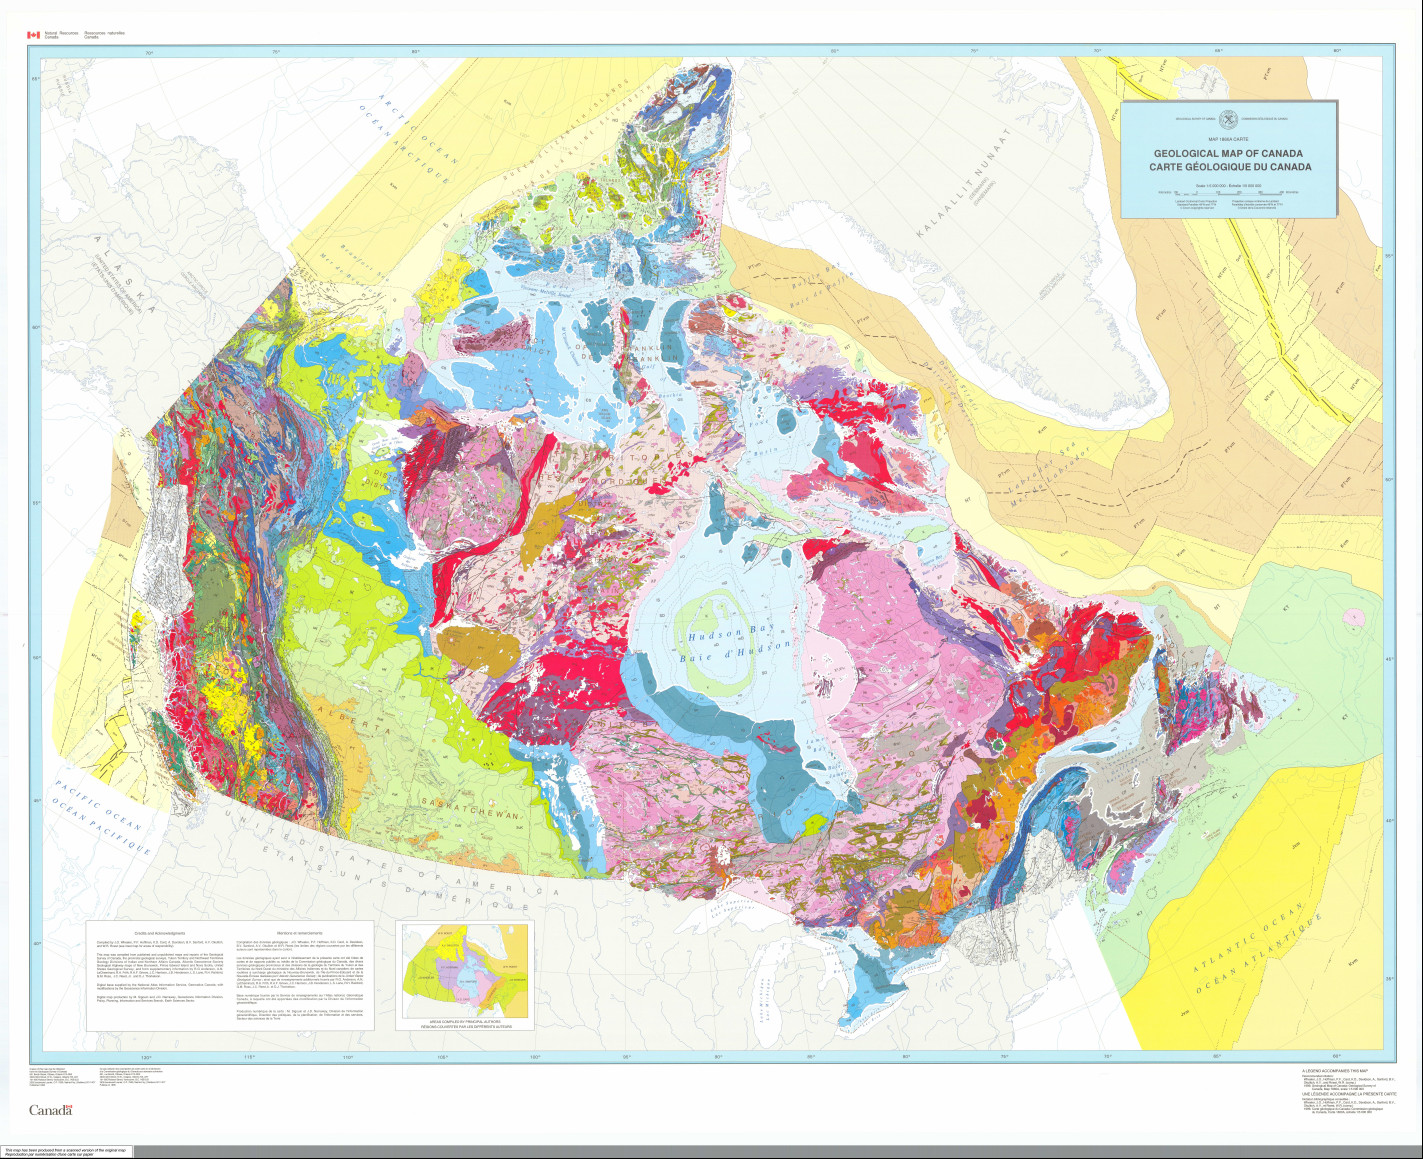 Geologic Map Of Canada 159. New Geological Map of Canada (1996)   Science.gc.ca